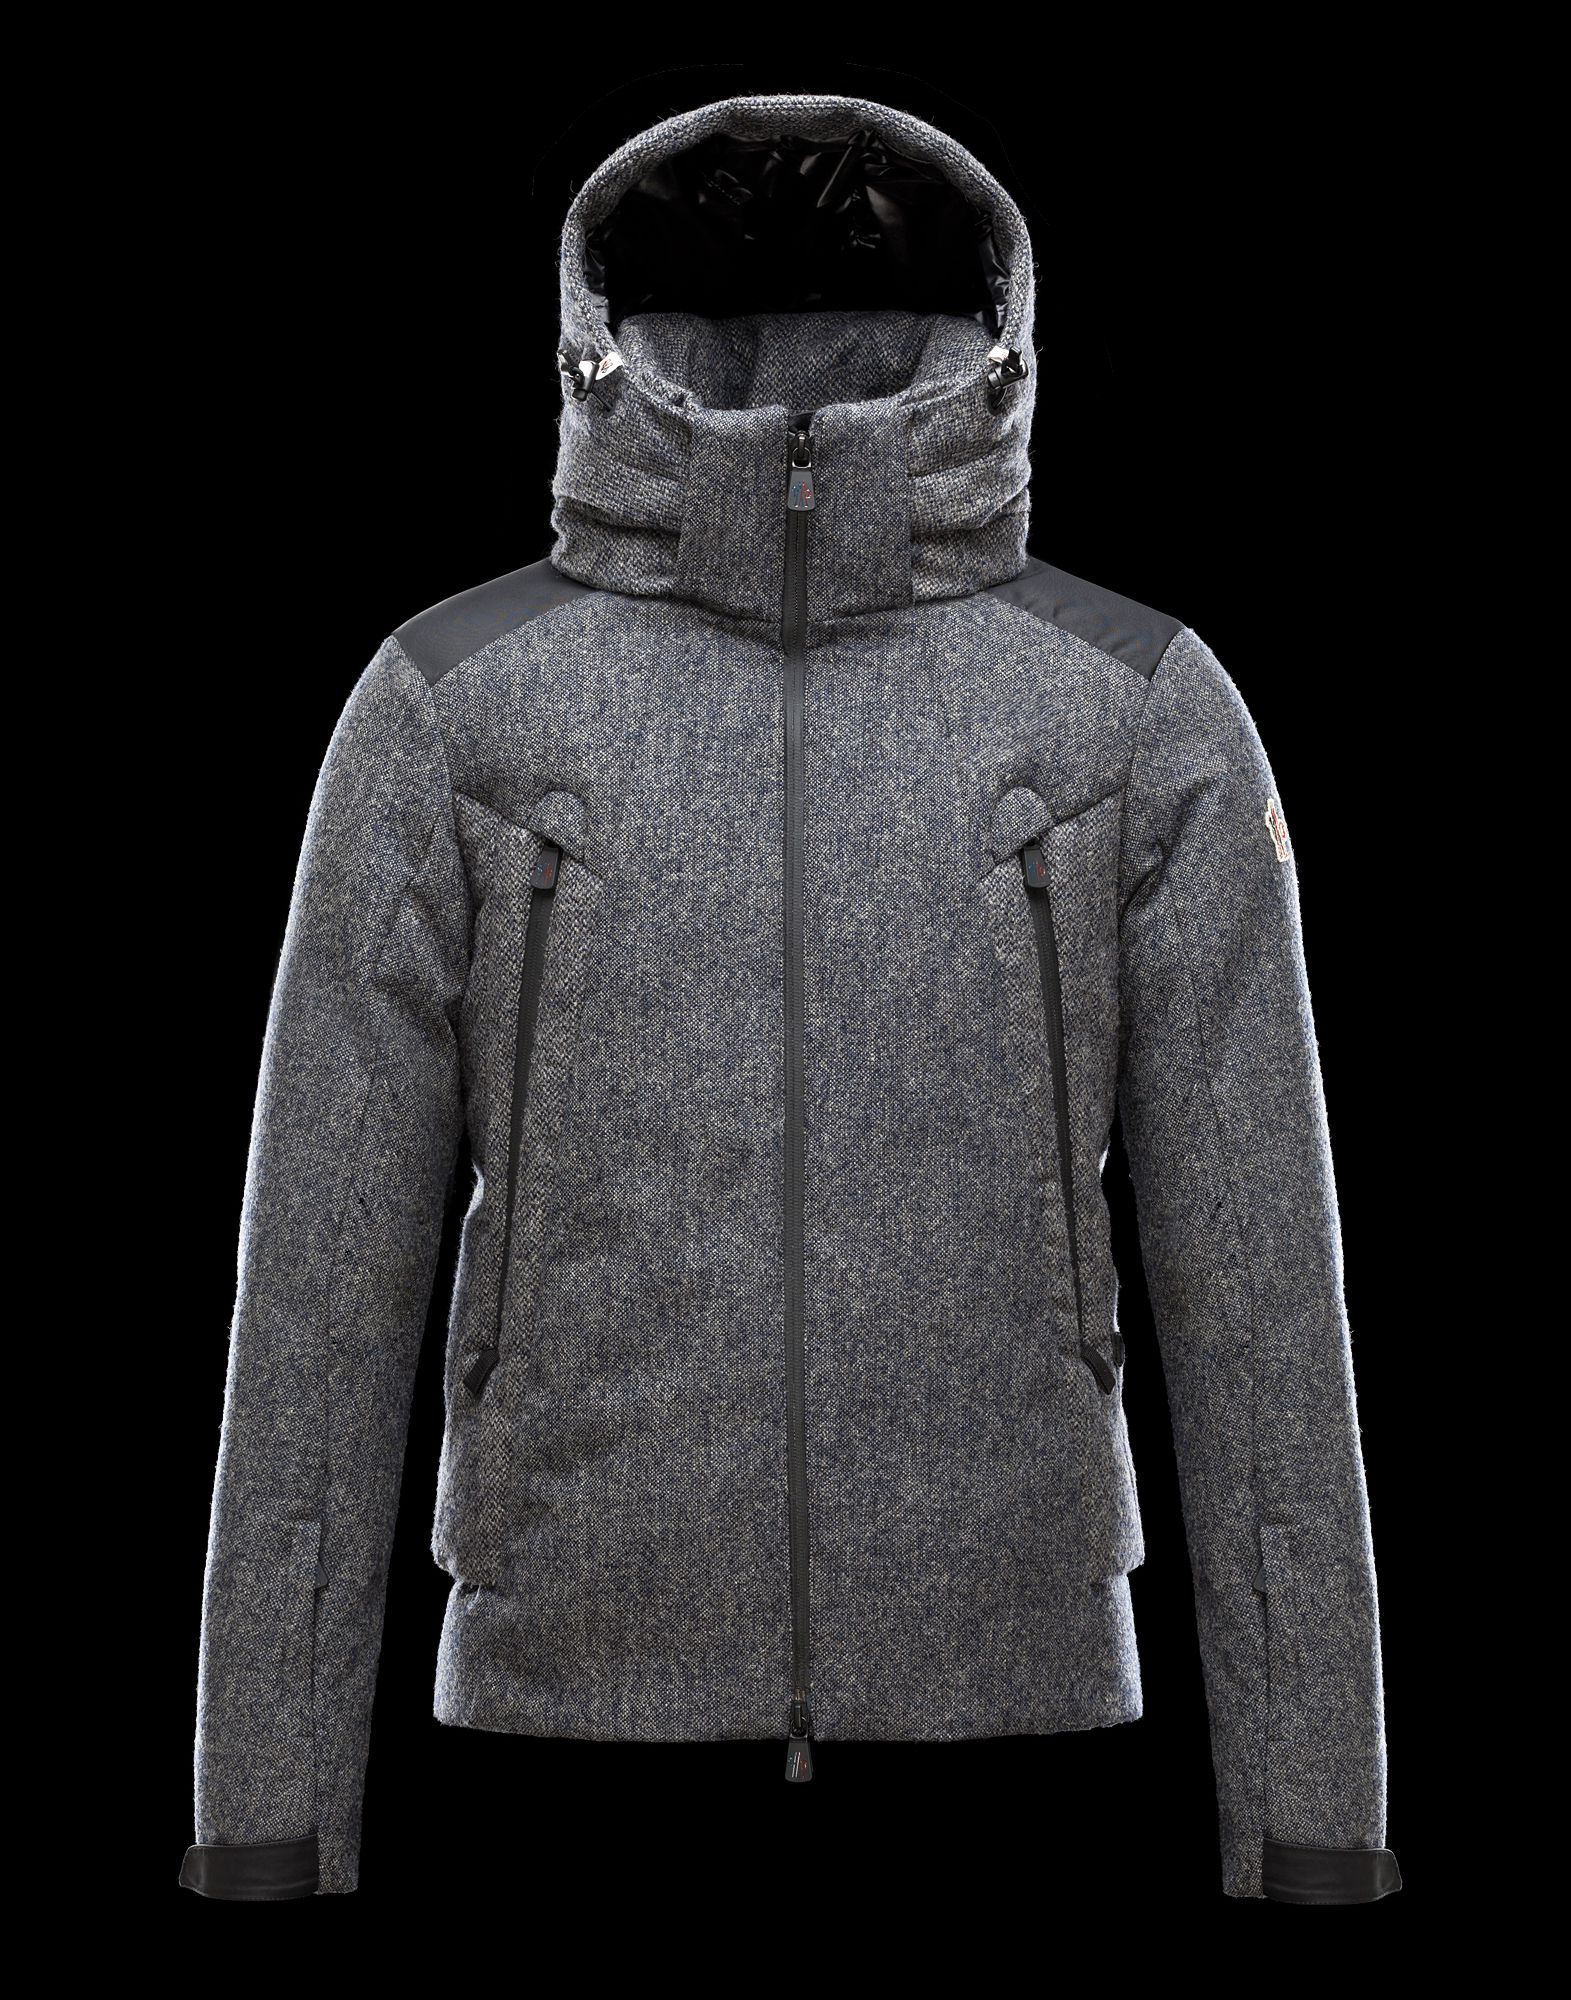 7e80e6f57703 MONCLER GRENOBLE Men - Fall Winter 12 - OUTERWEAR - Jacket - DEVON ...